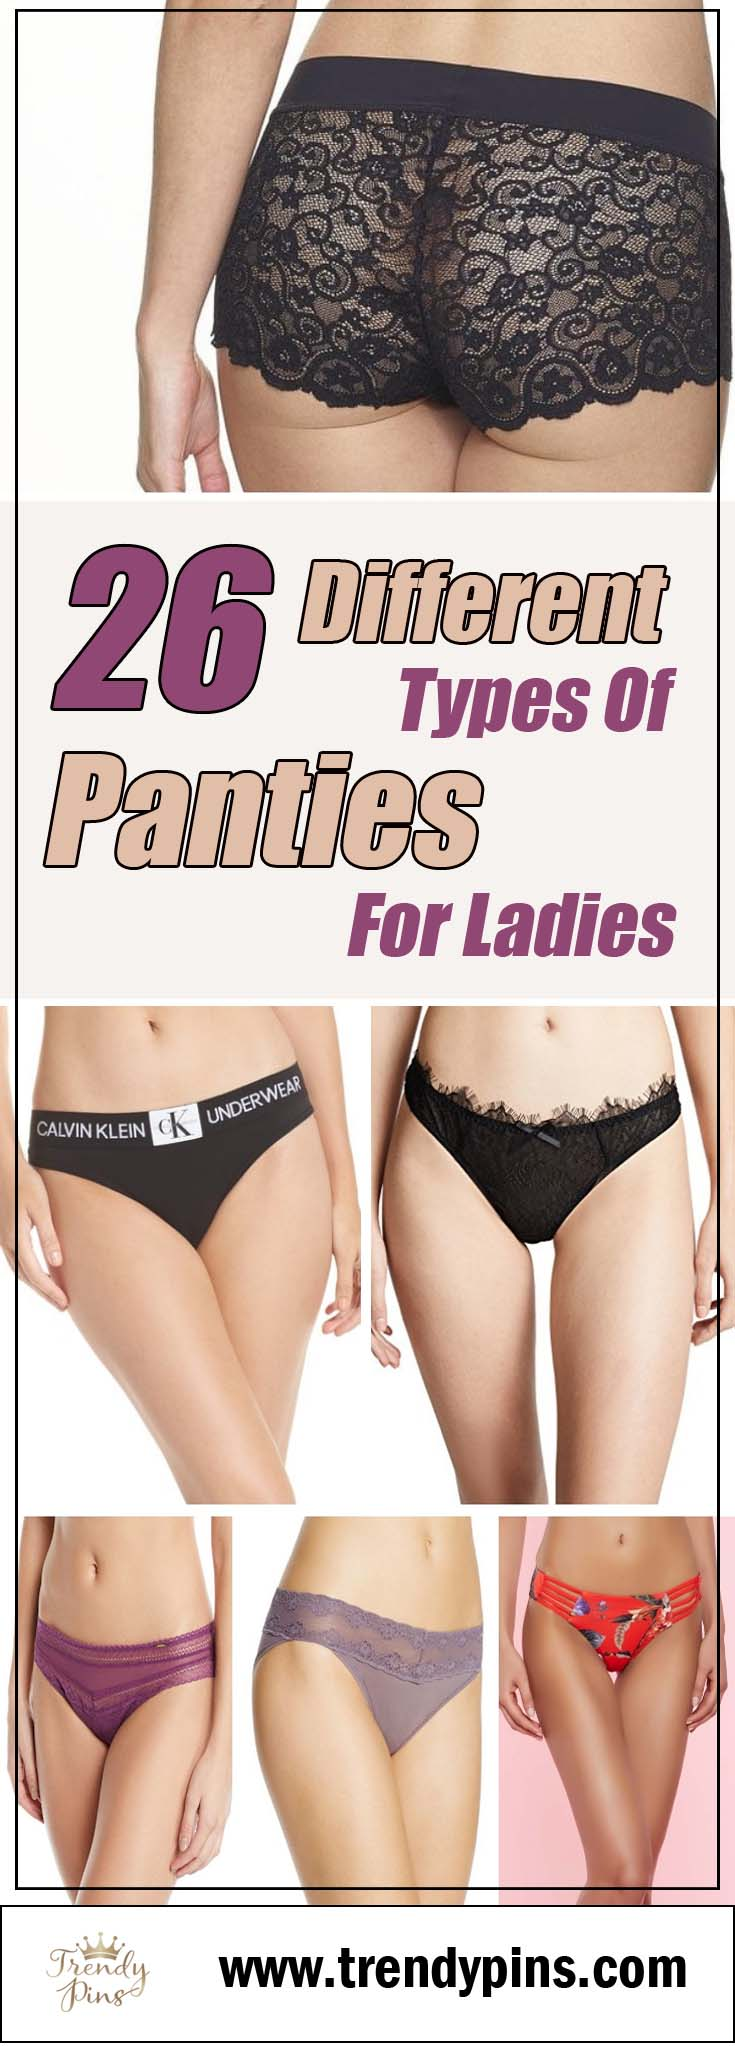 26 different types of panties for ladies #panties #fashion #trendypins